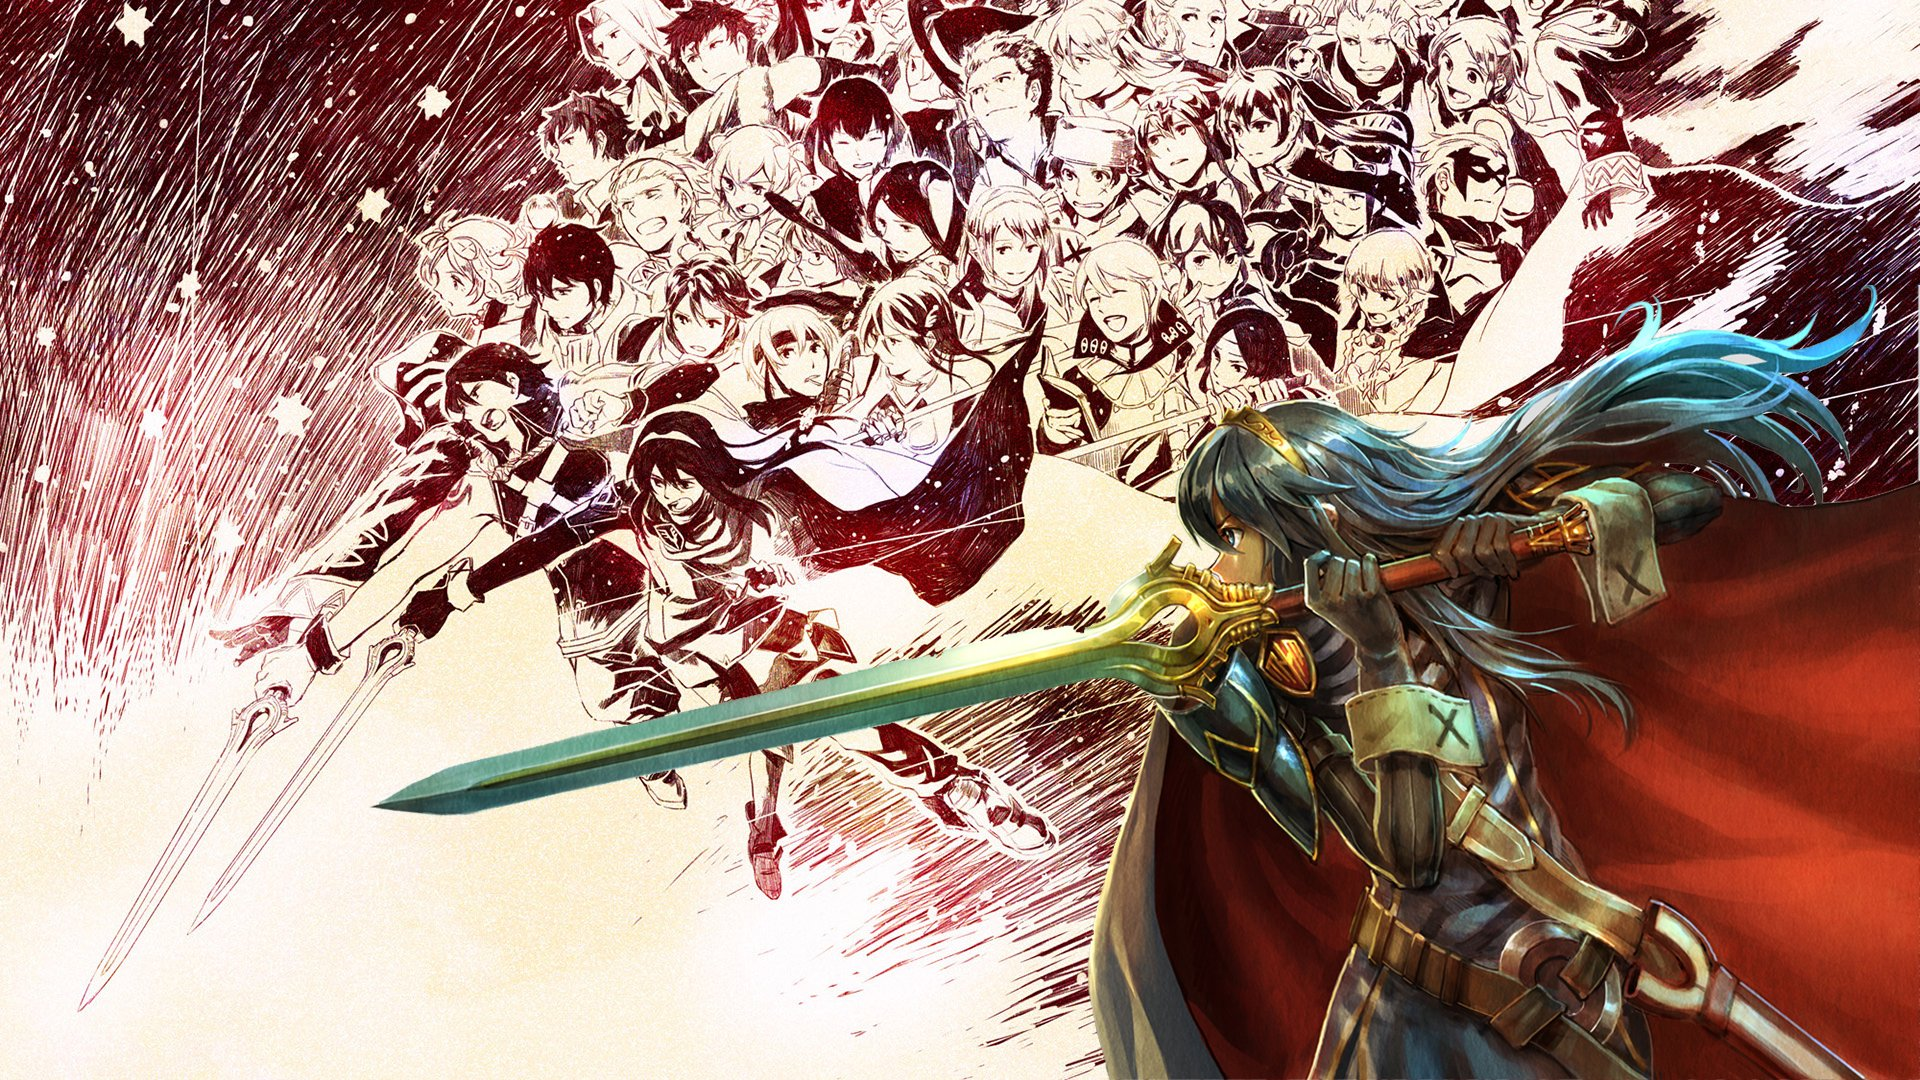 1 Gaius Fire Emblem Hd Wallpapers Background Images